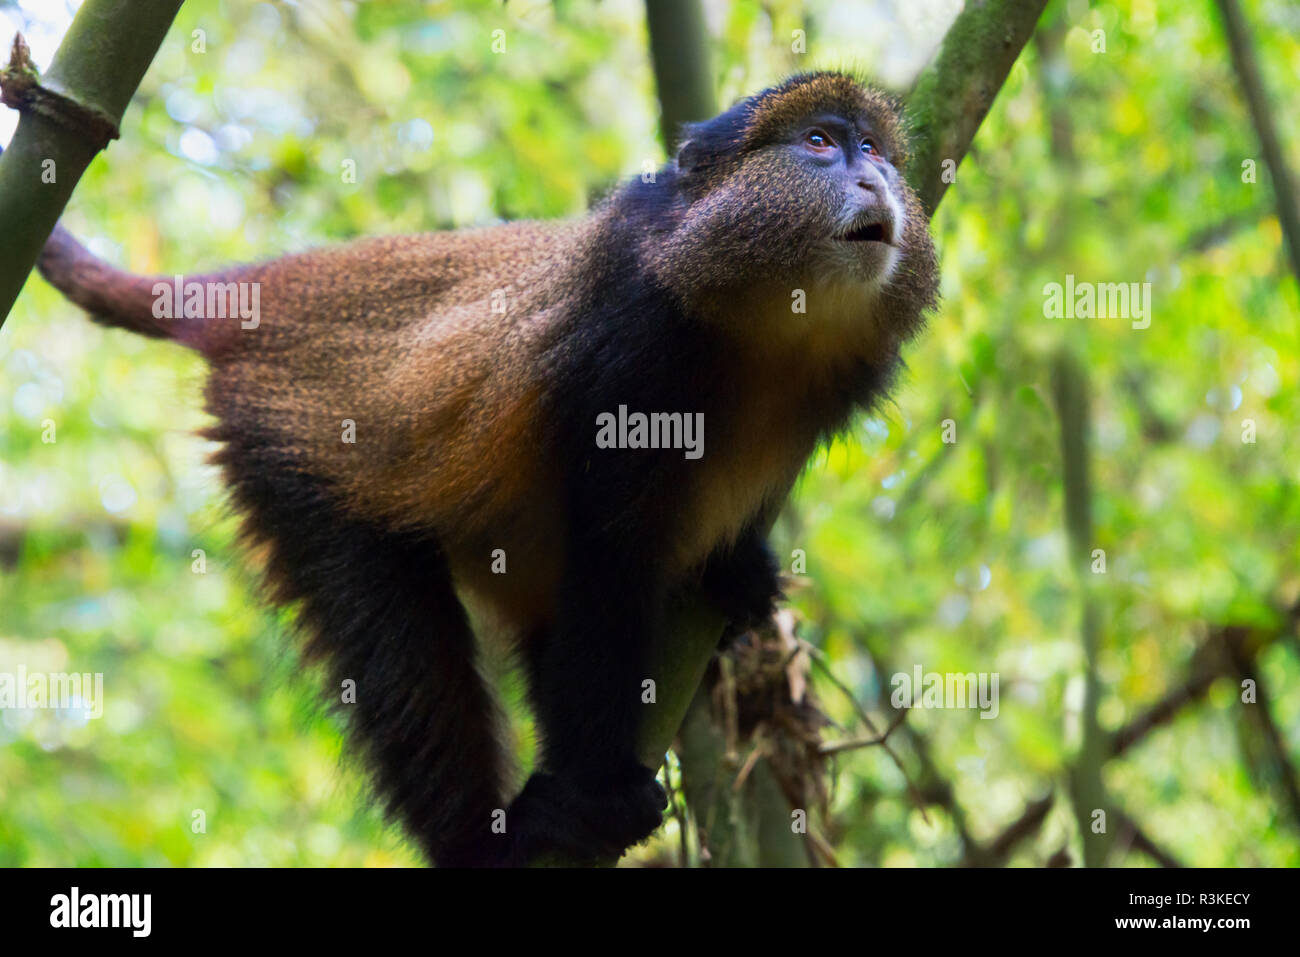 Golden Monkey in the bamboo forest, Parc National des Volcans, Rwanda - Stock Image